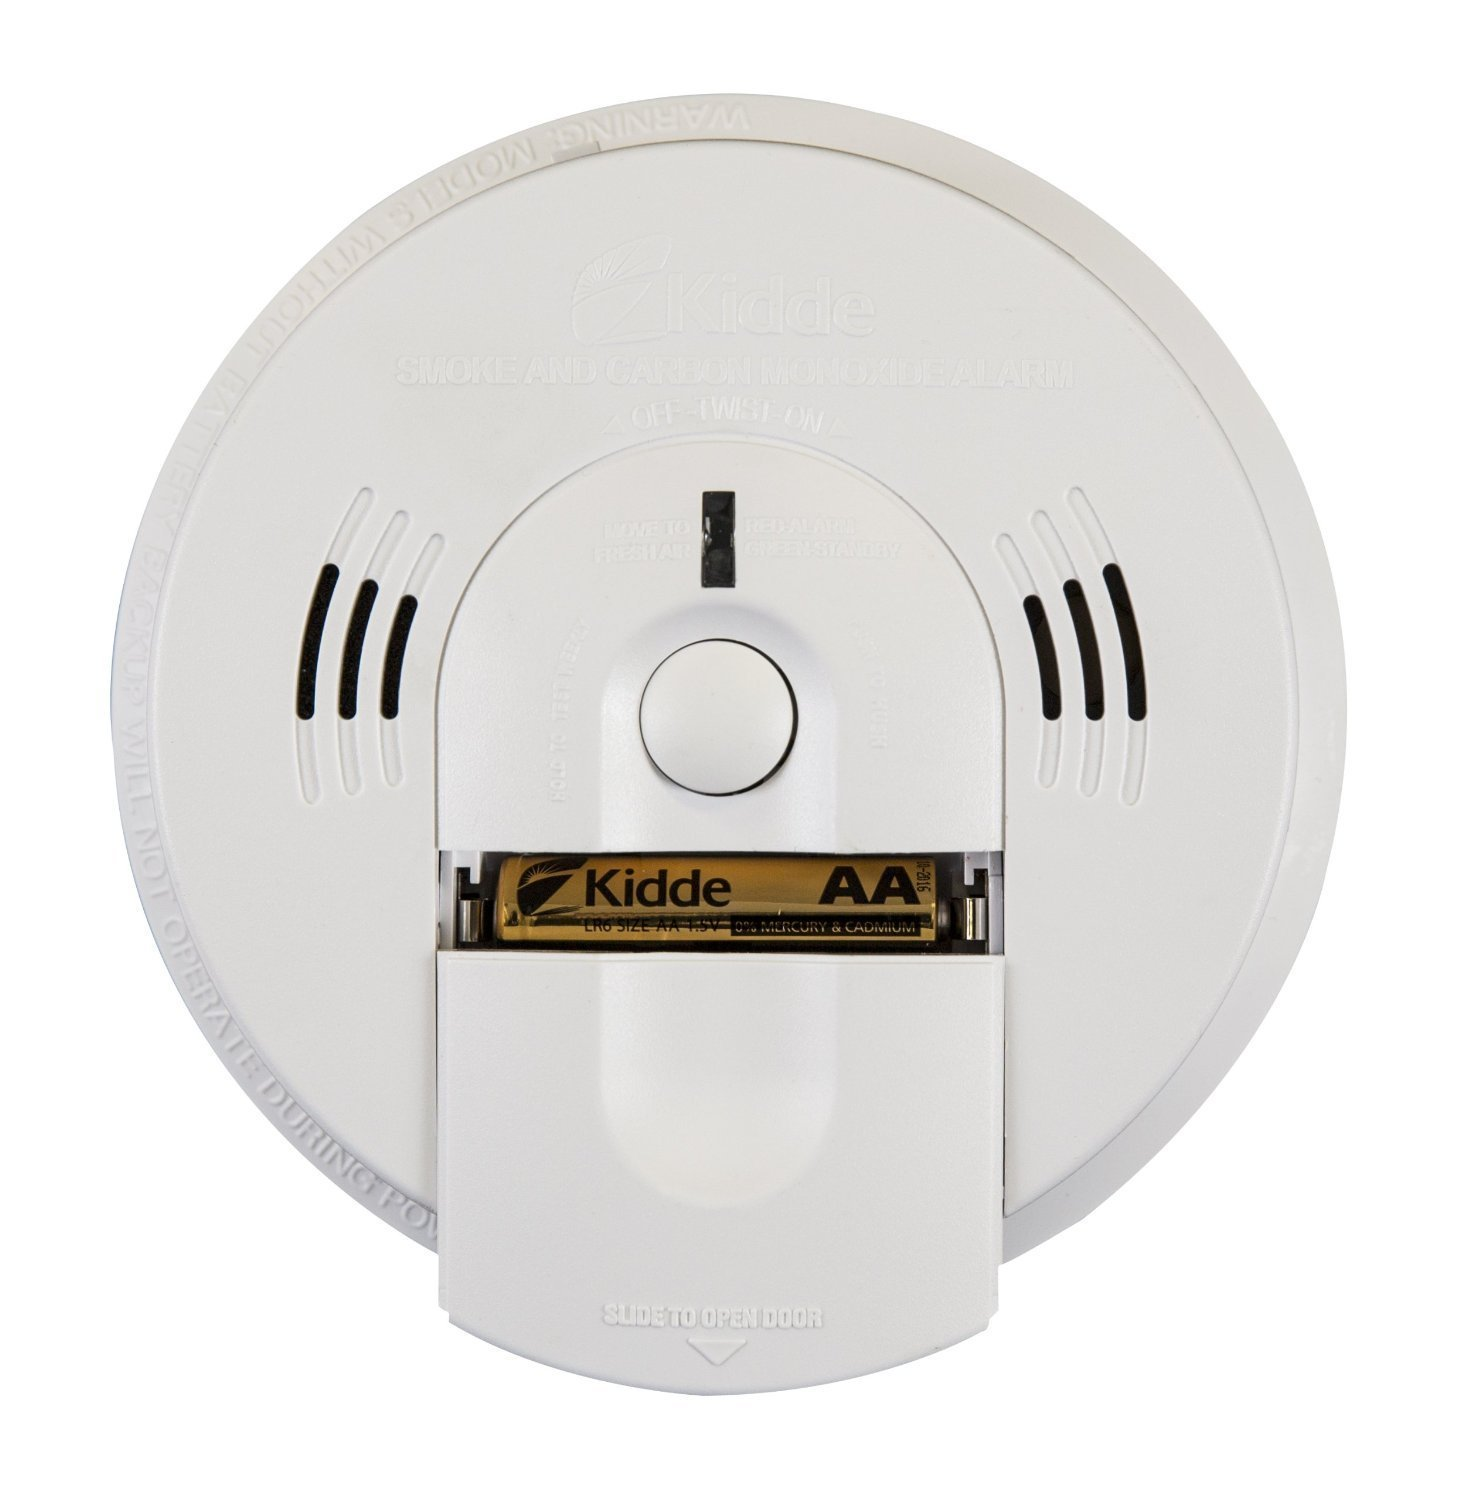 Kidde KN-COSM-B Battery-Operated Combination Carbon Monoxide and Smoke  Alarm with Talking Alarm *4-Pack* - - Amazon.com